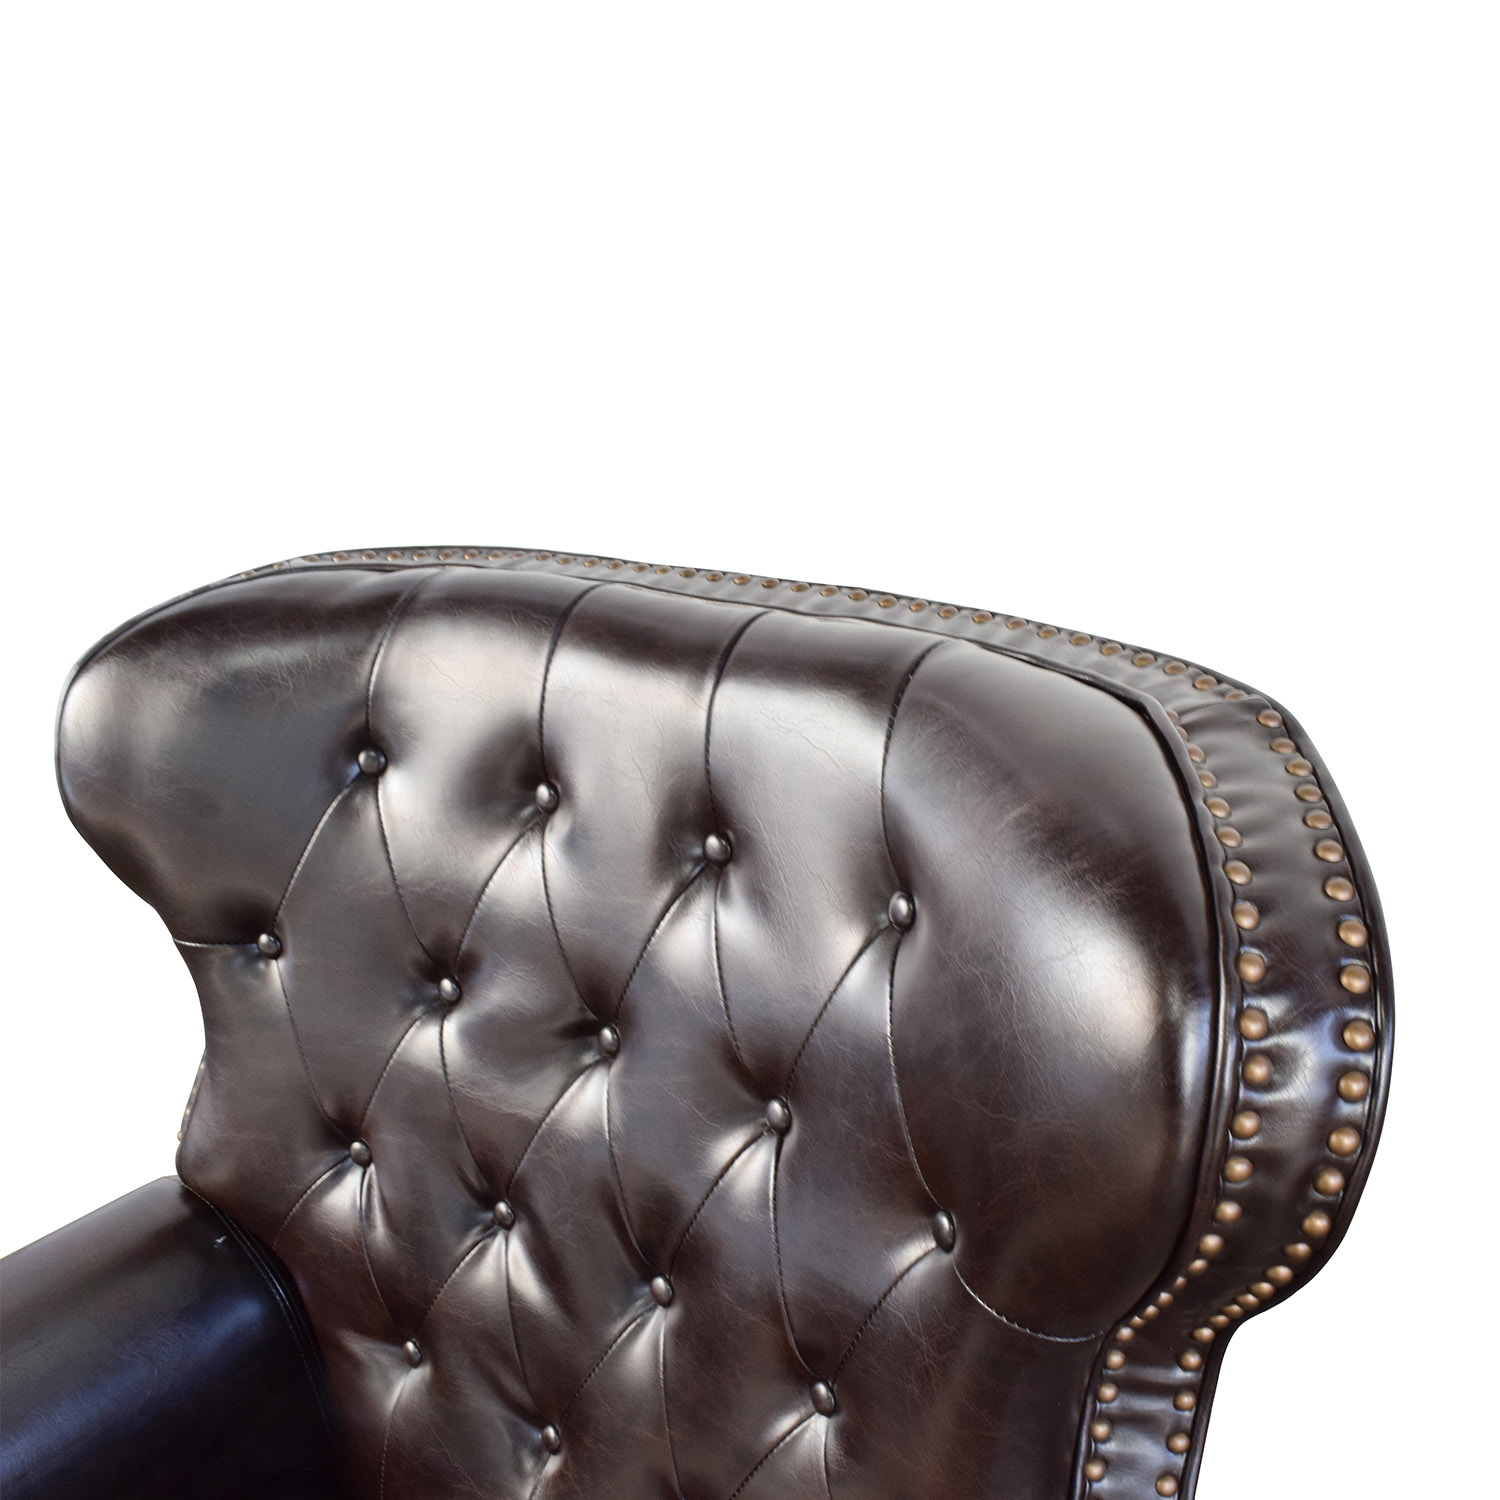 ... Tufted Brown Leather Recliner Chairs ...  sc 1 st  Furnishare & 58% OFF - Tufted Brown Leather Recliner / Chairs islam-shia.org